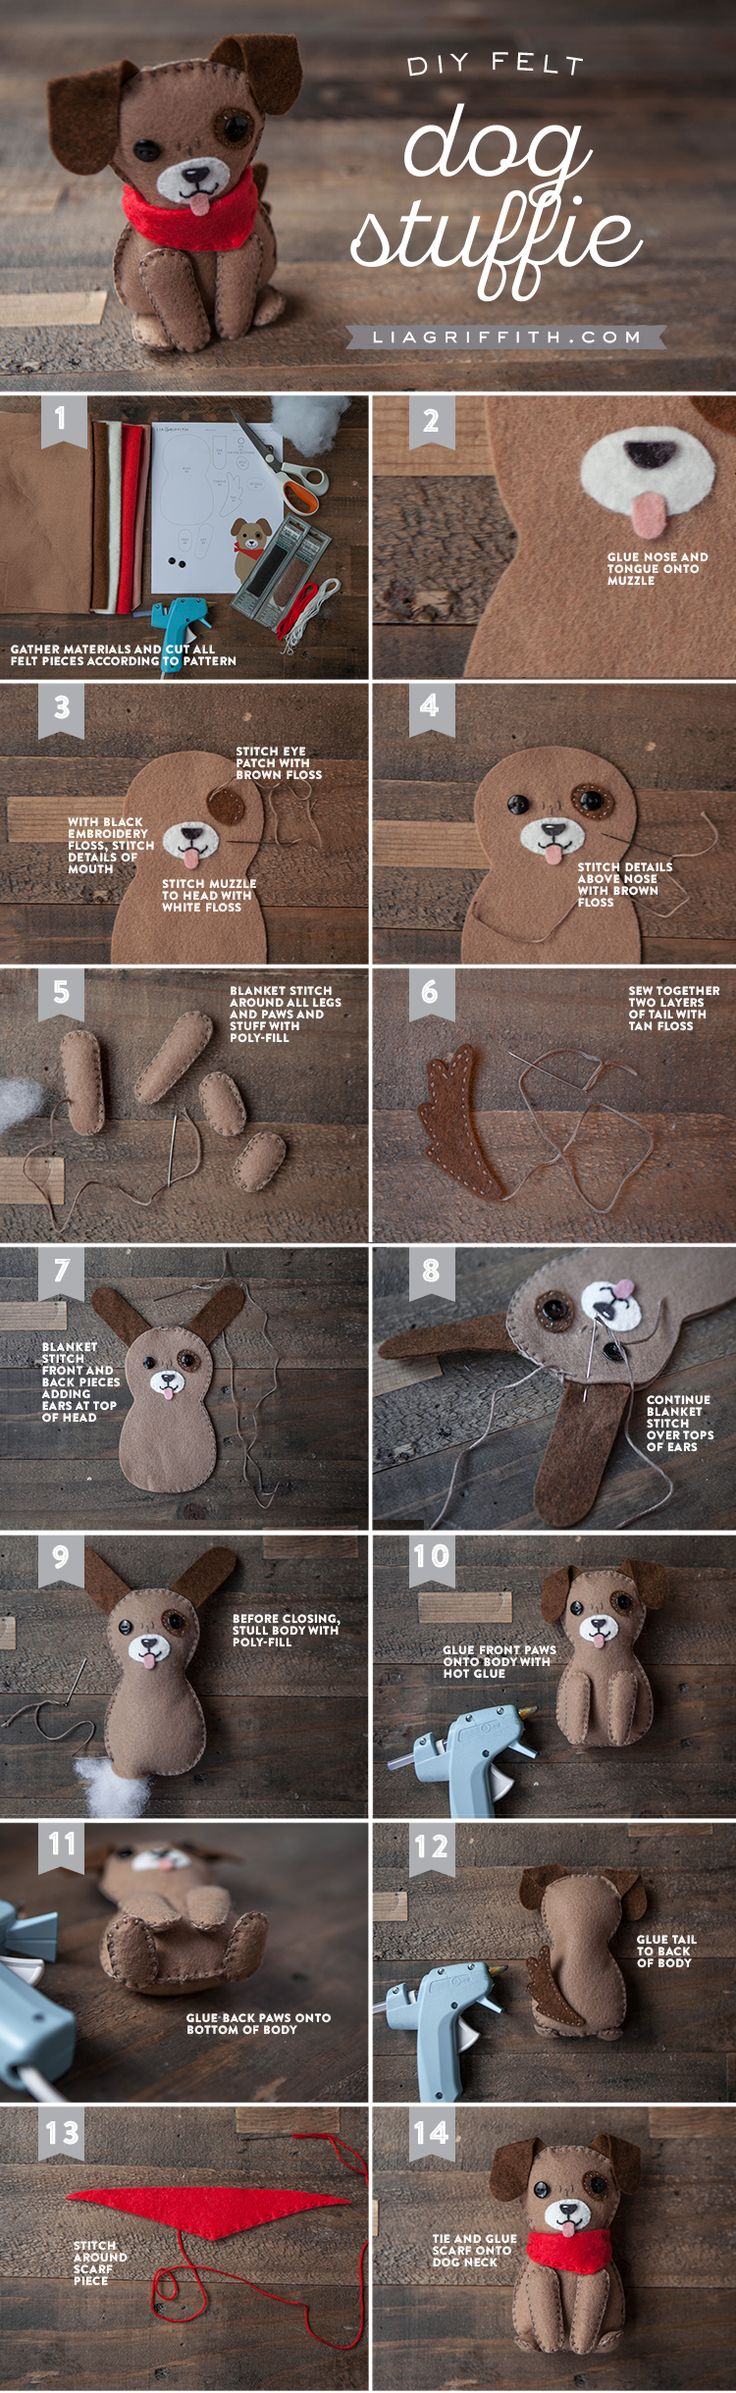 Woof! Want to make the cutest stuffed dog you ever did see? Downloadable pattern and tutorial by handcrafted lifestyle expert Lia